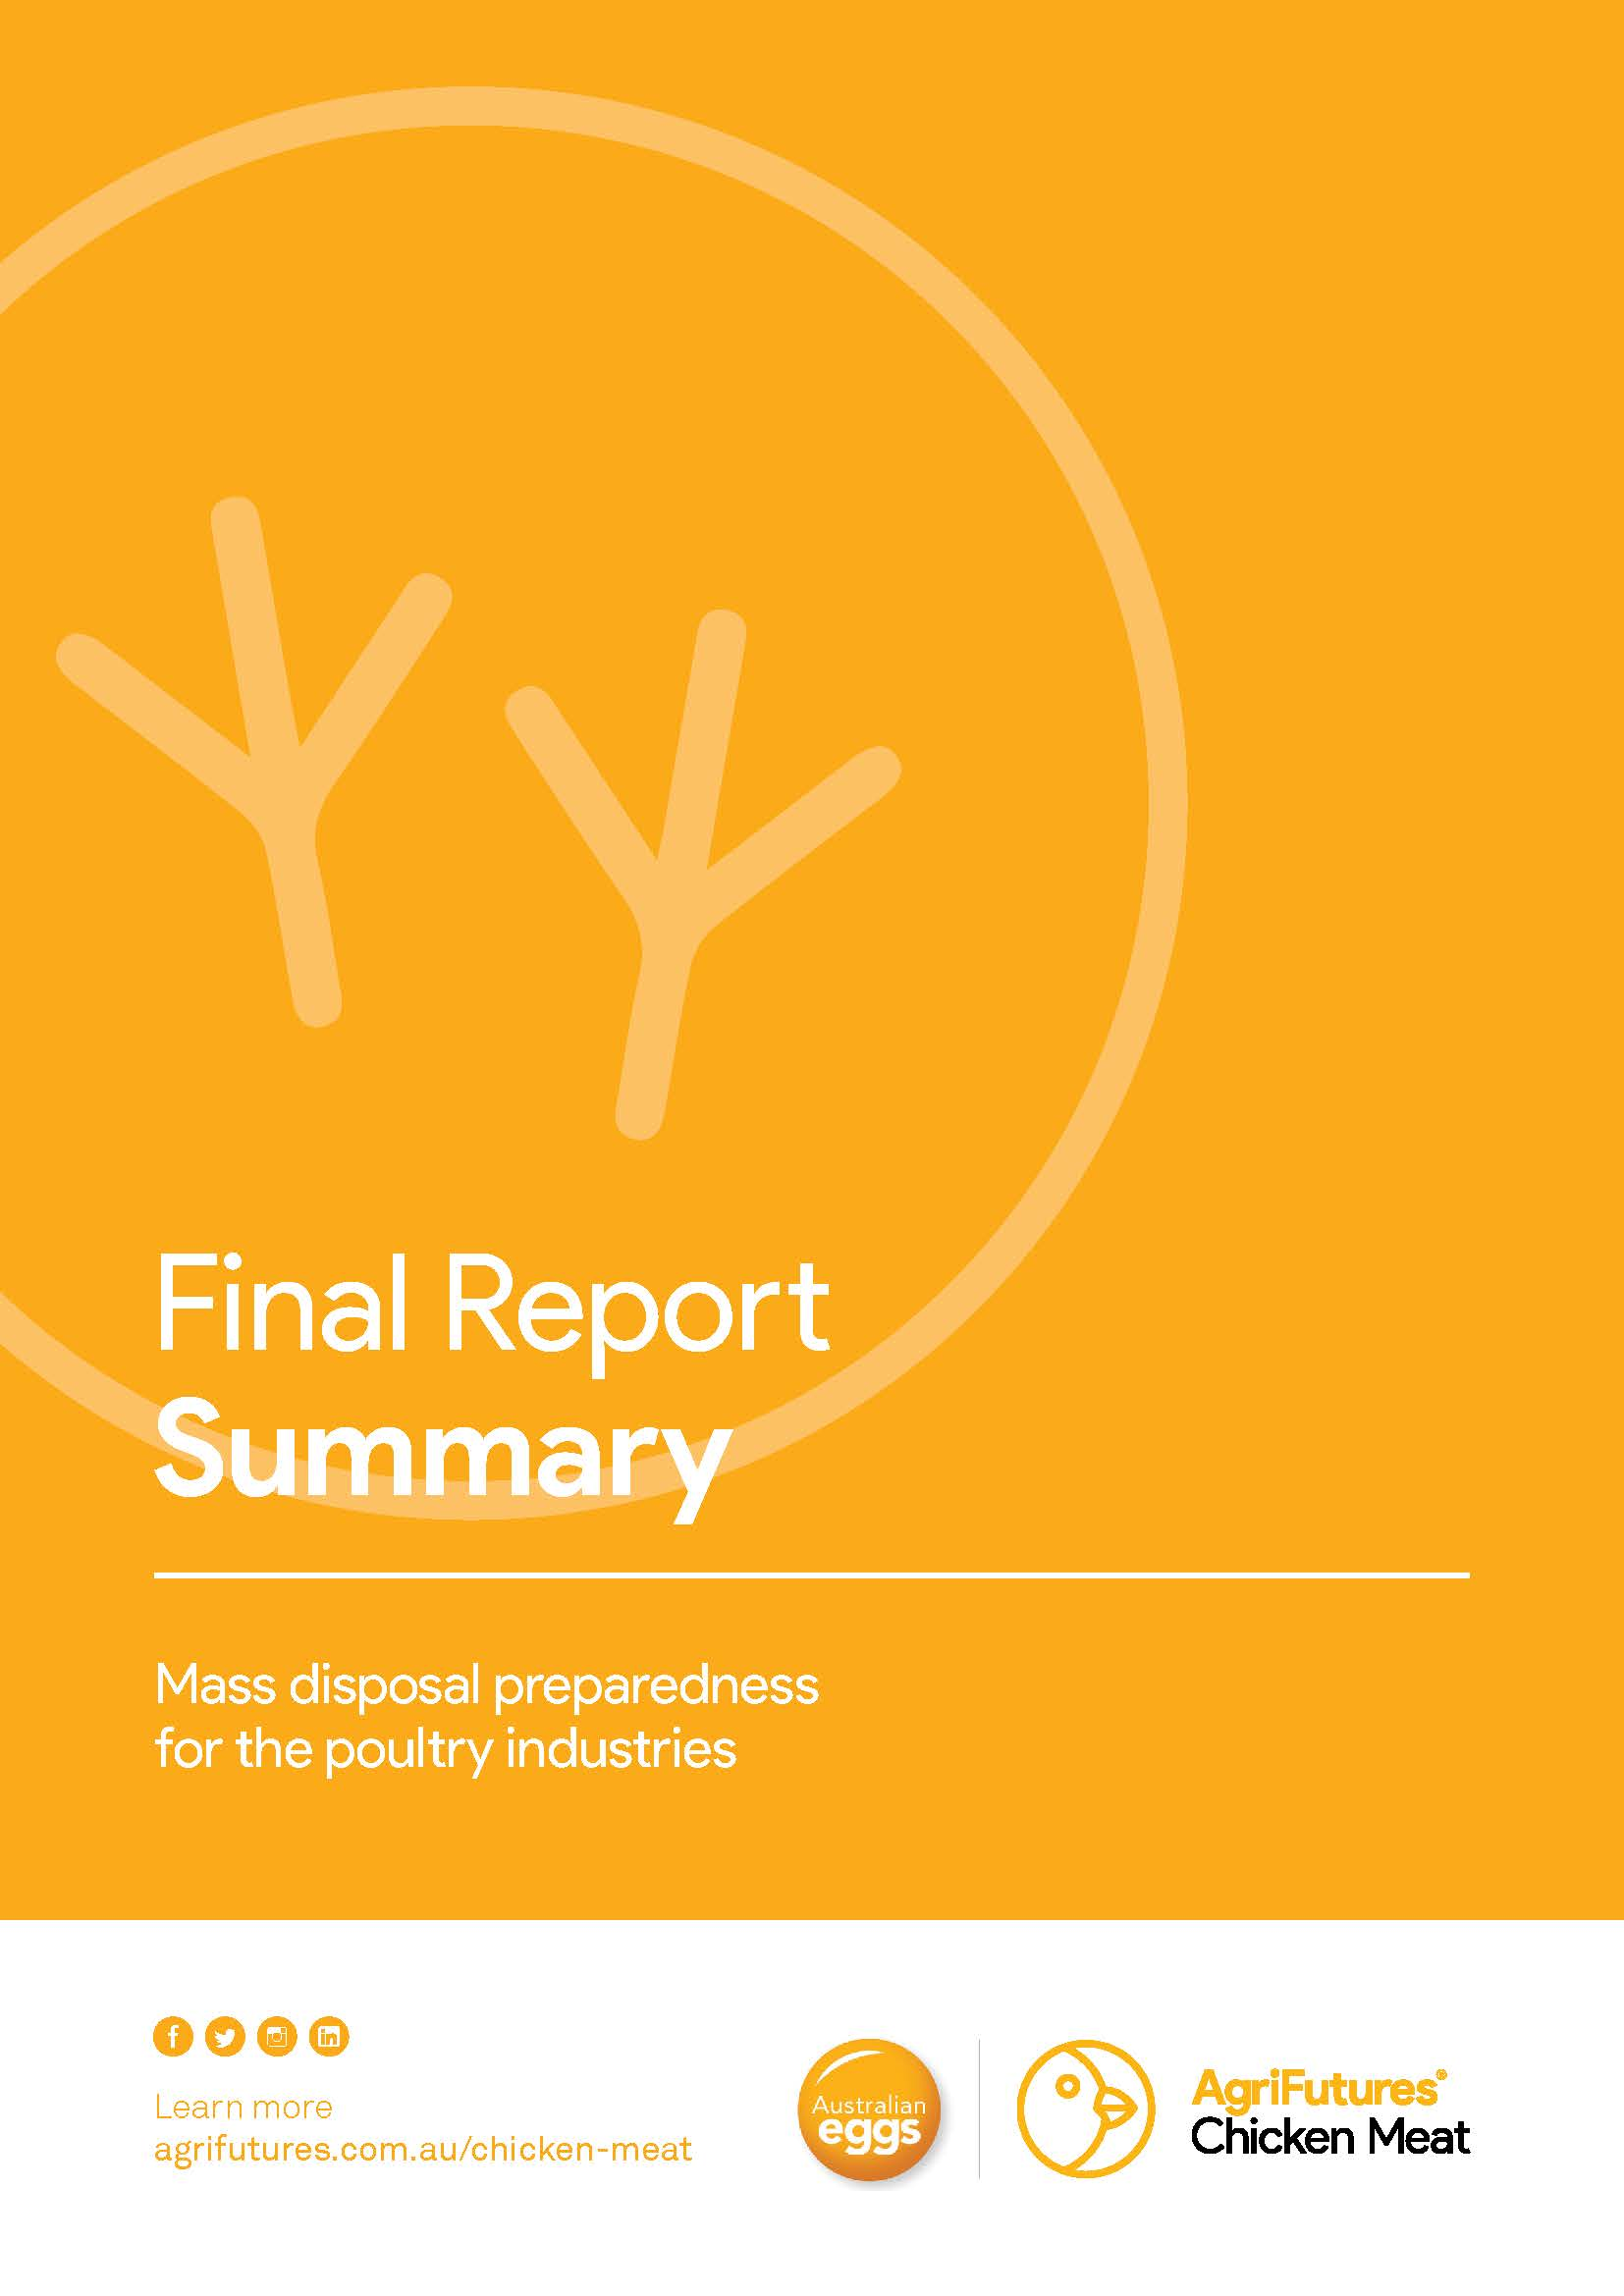 Final Report Summary: Mass disposal preparedness for the poultry industries - image